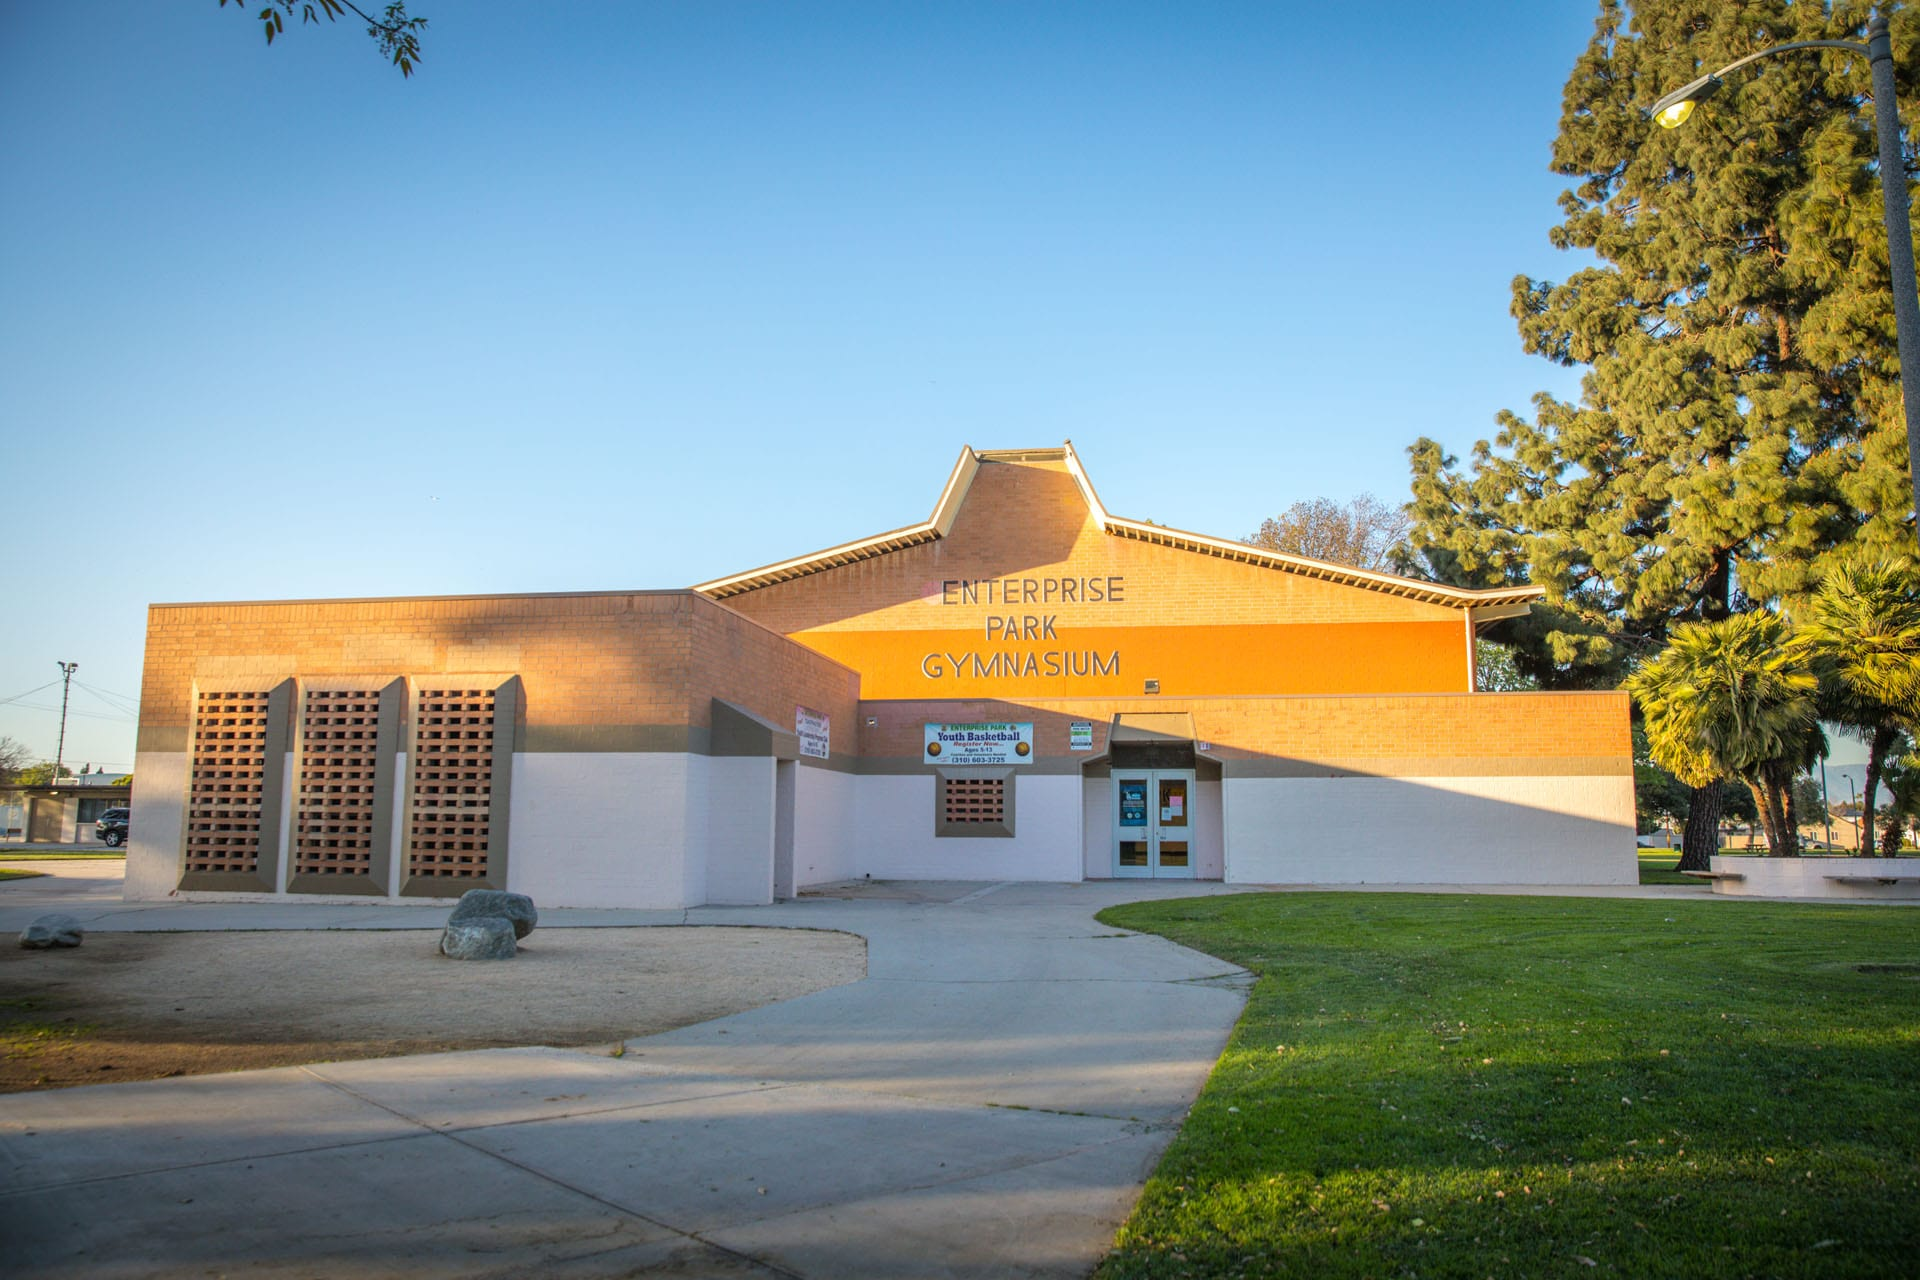 Enterprise Park Gymnasium building